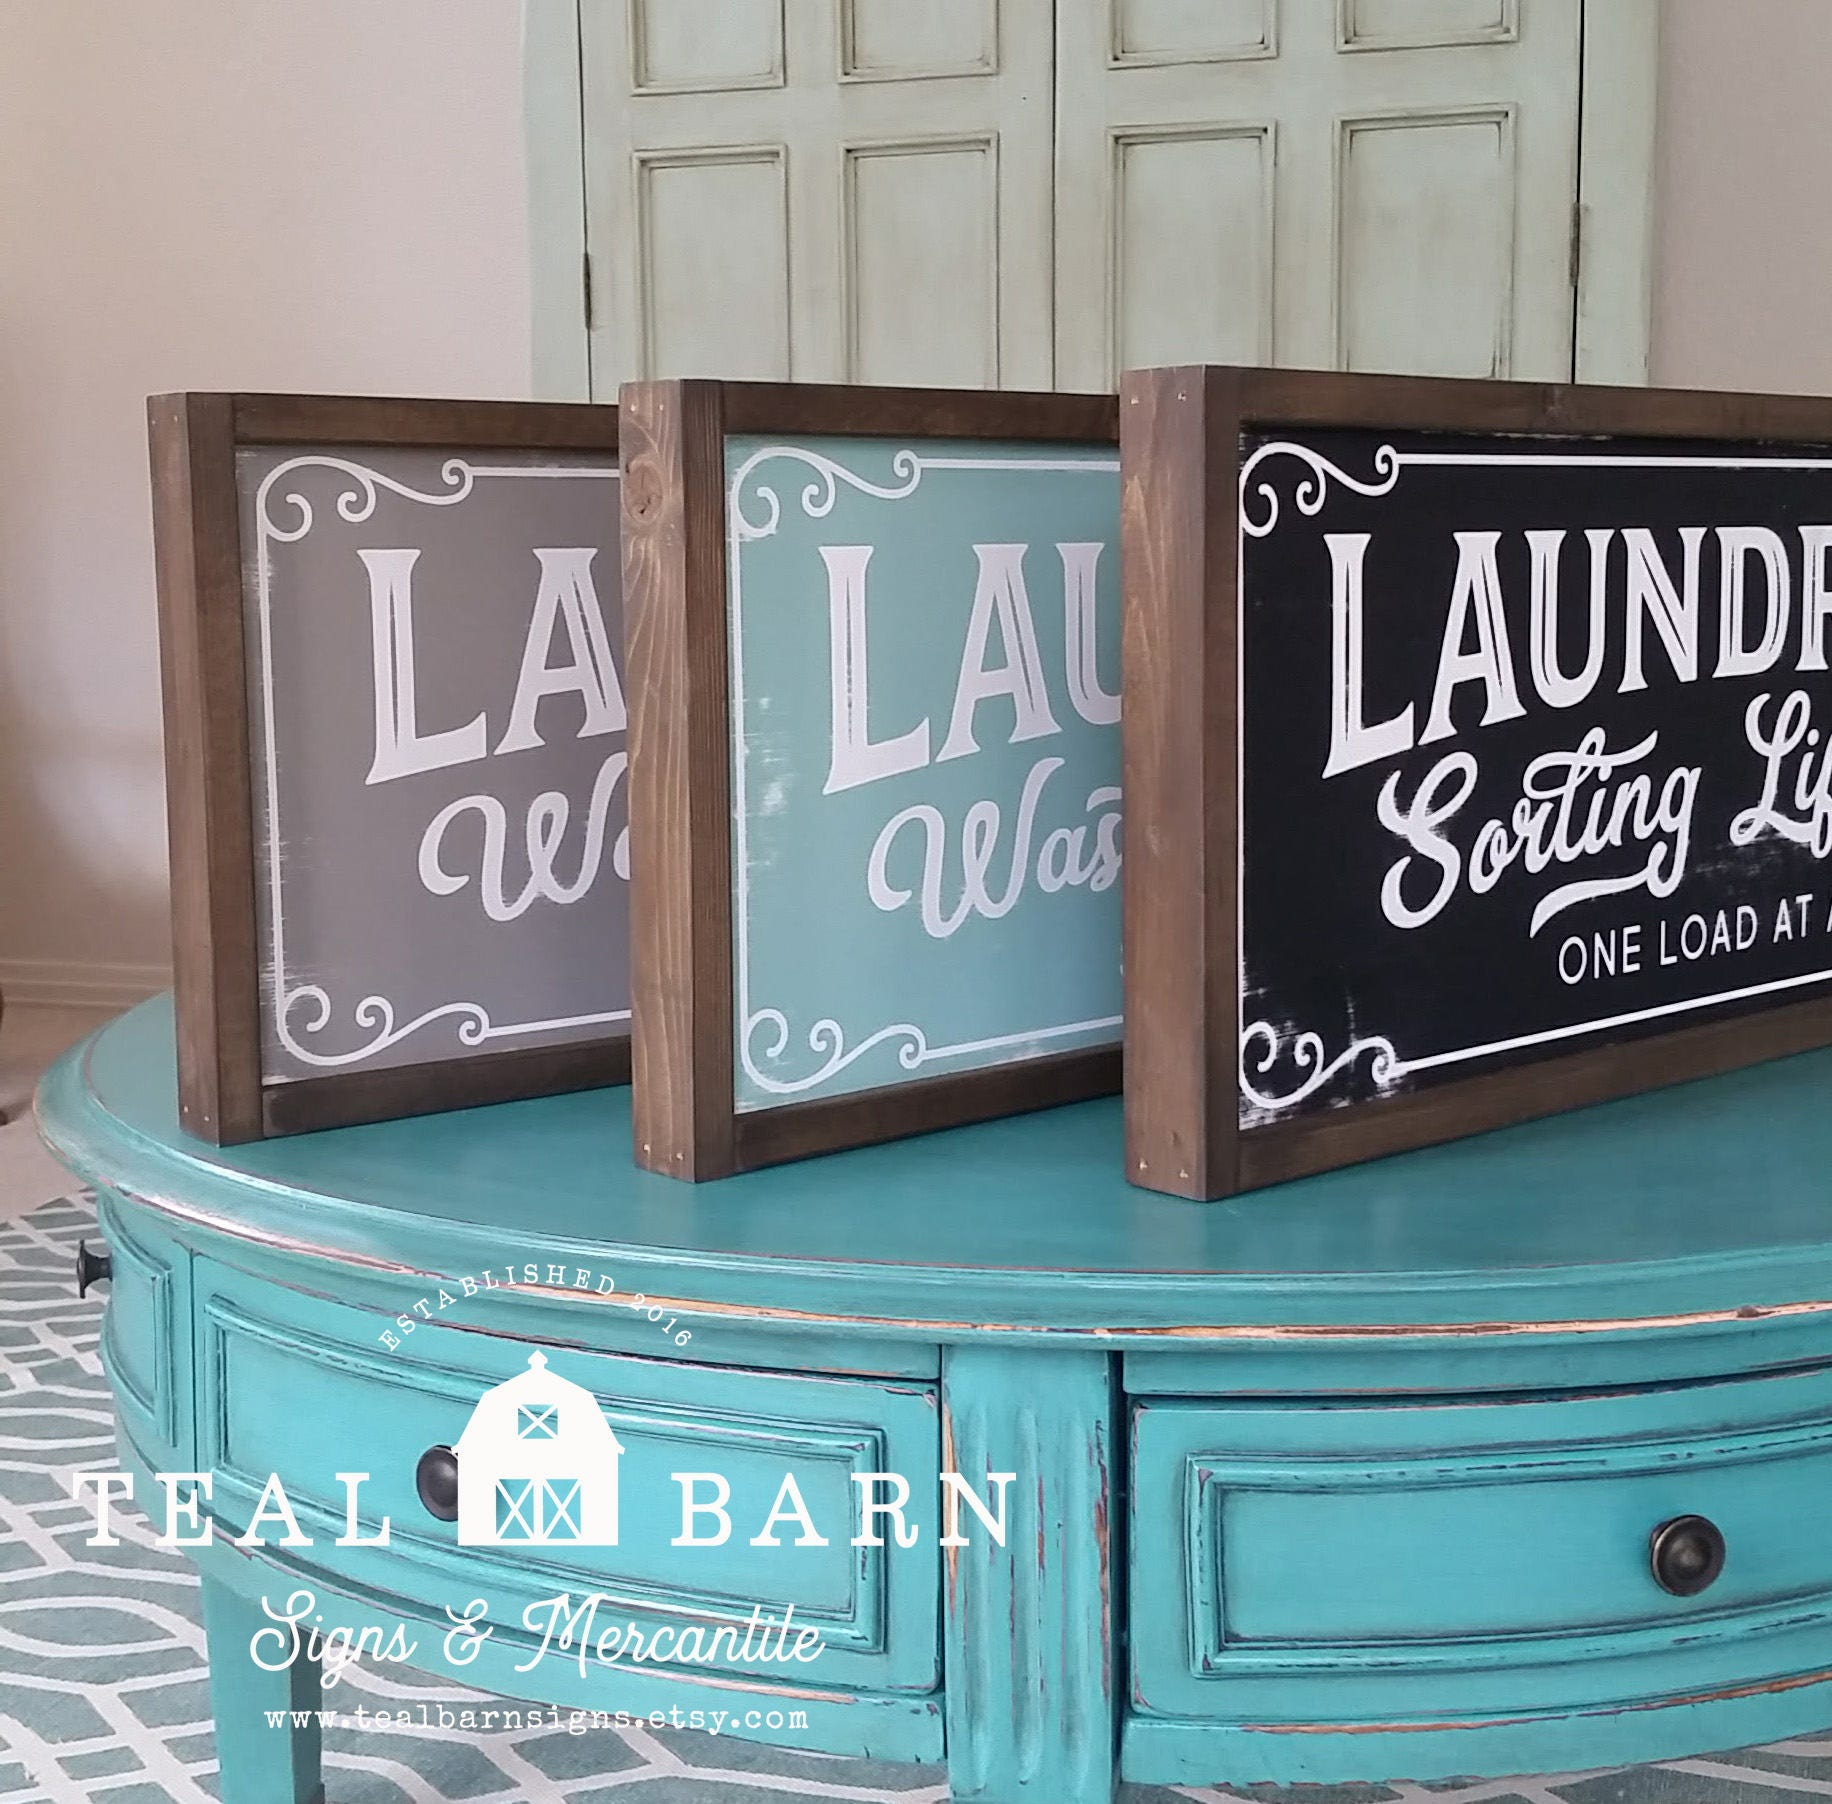 Laundry And Co Sign Laundry Co Sign Sorting Life Out One Load At A Time  Farmhouse